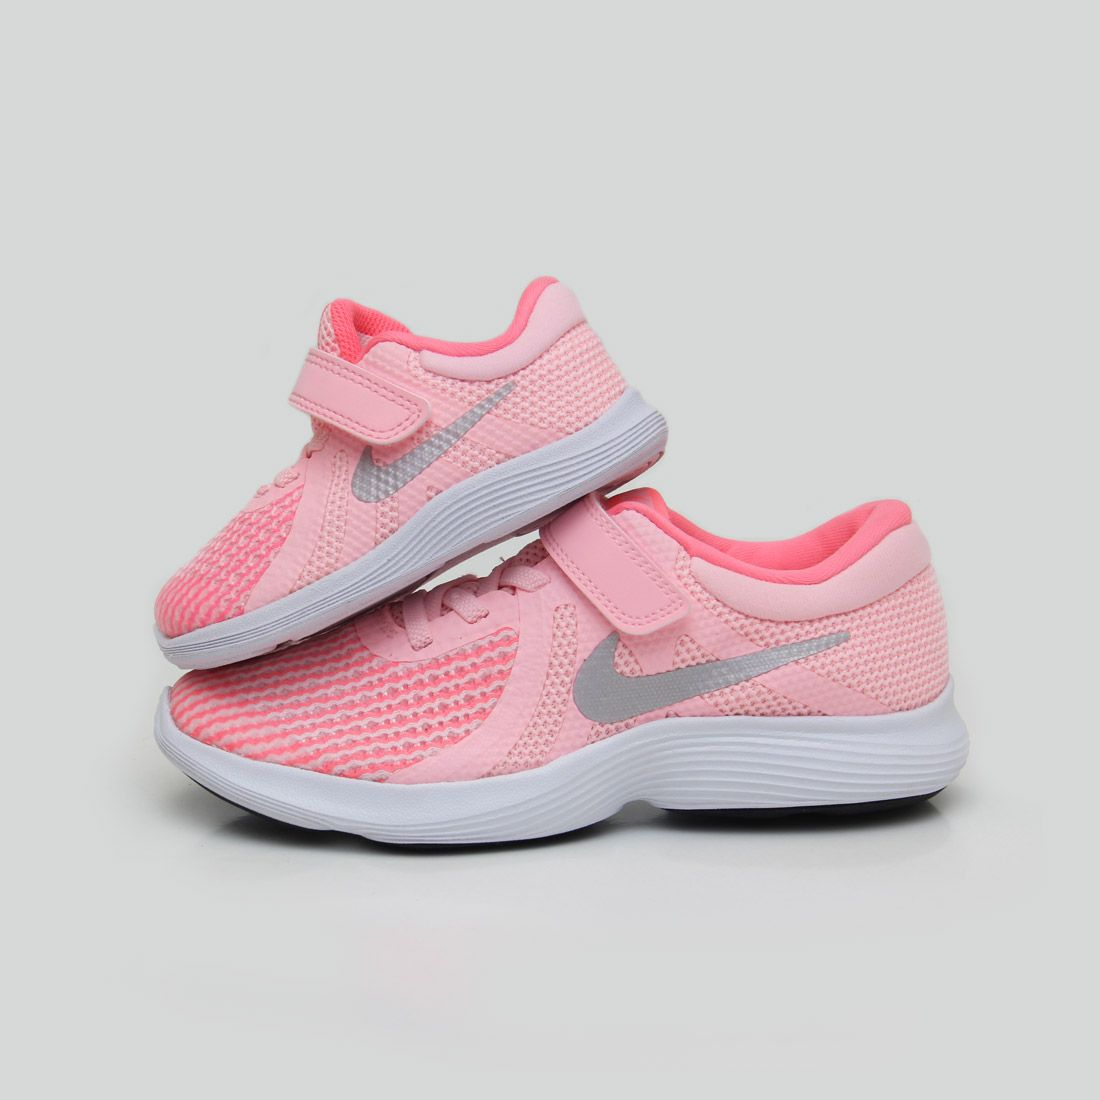 official photos 569e1 06114 Zapatillas Nike para las princesitas 💖👧  zacaris  newcollection  ss18   shoponline